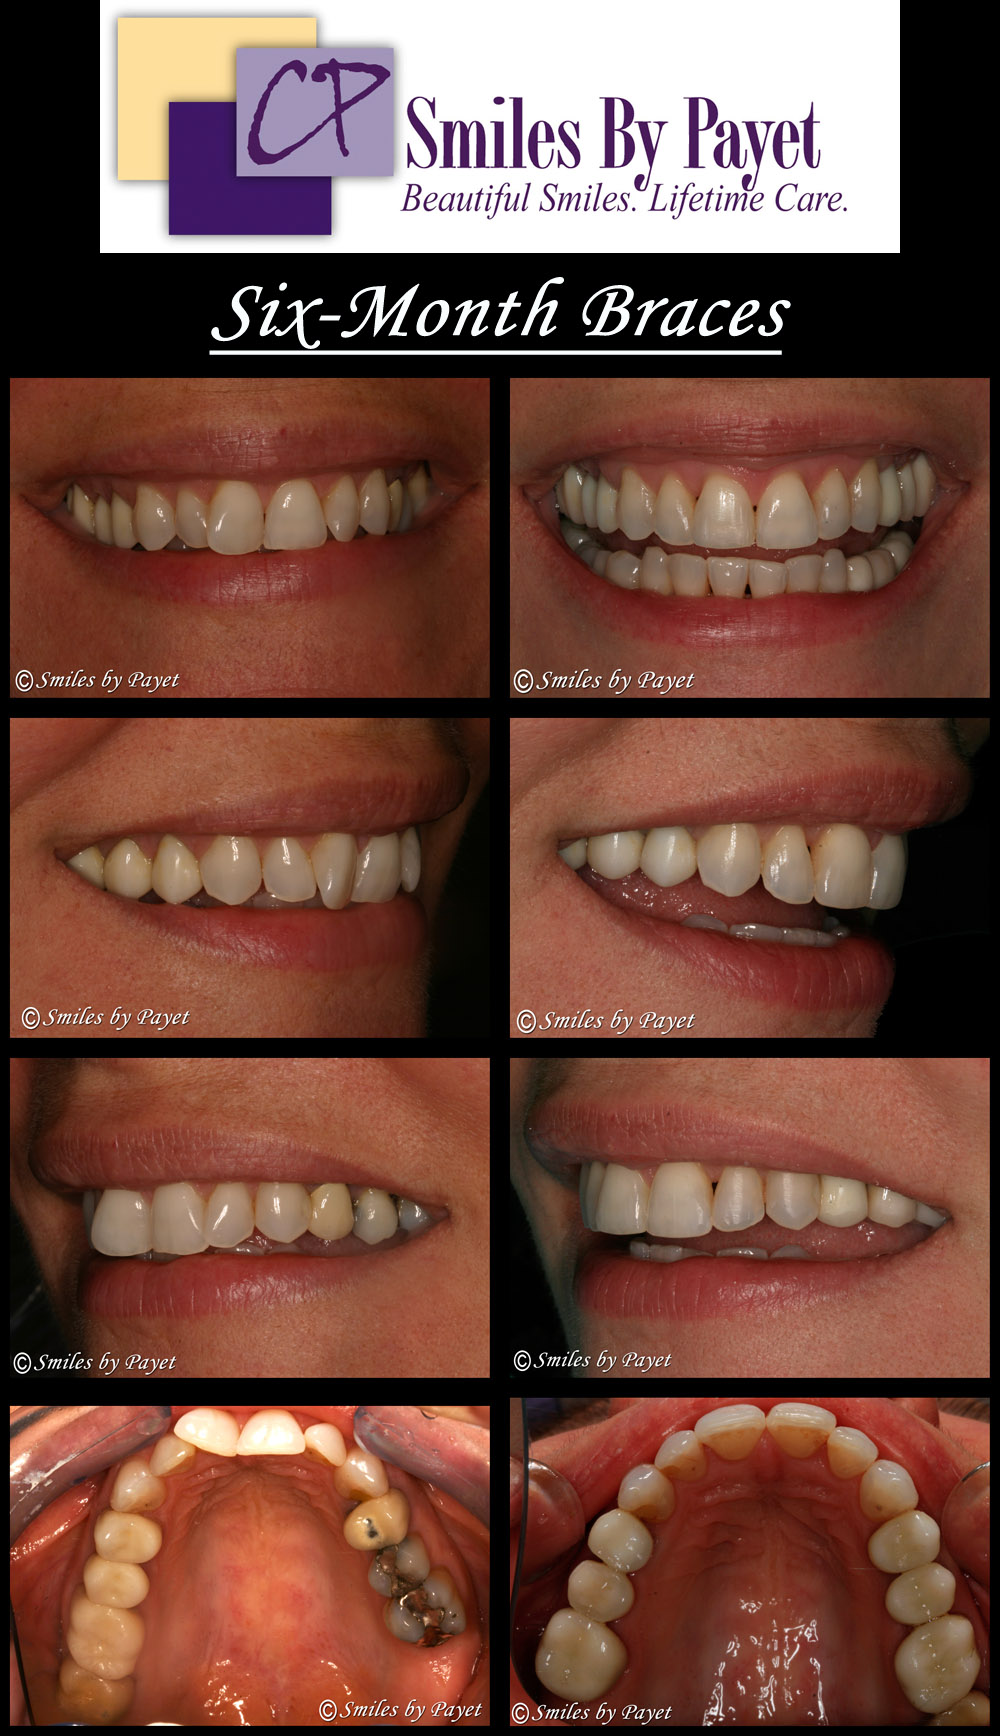 Six Month Braces Straight Teeth In 6 Months Charles D